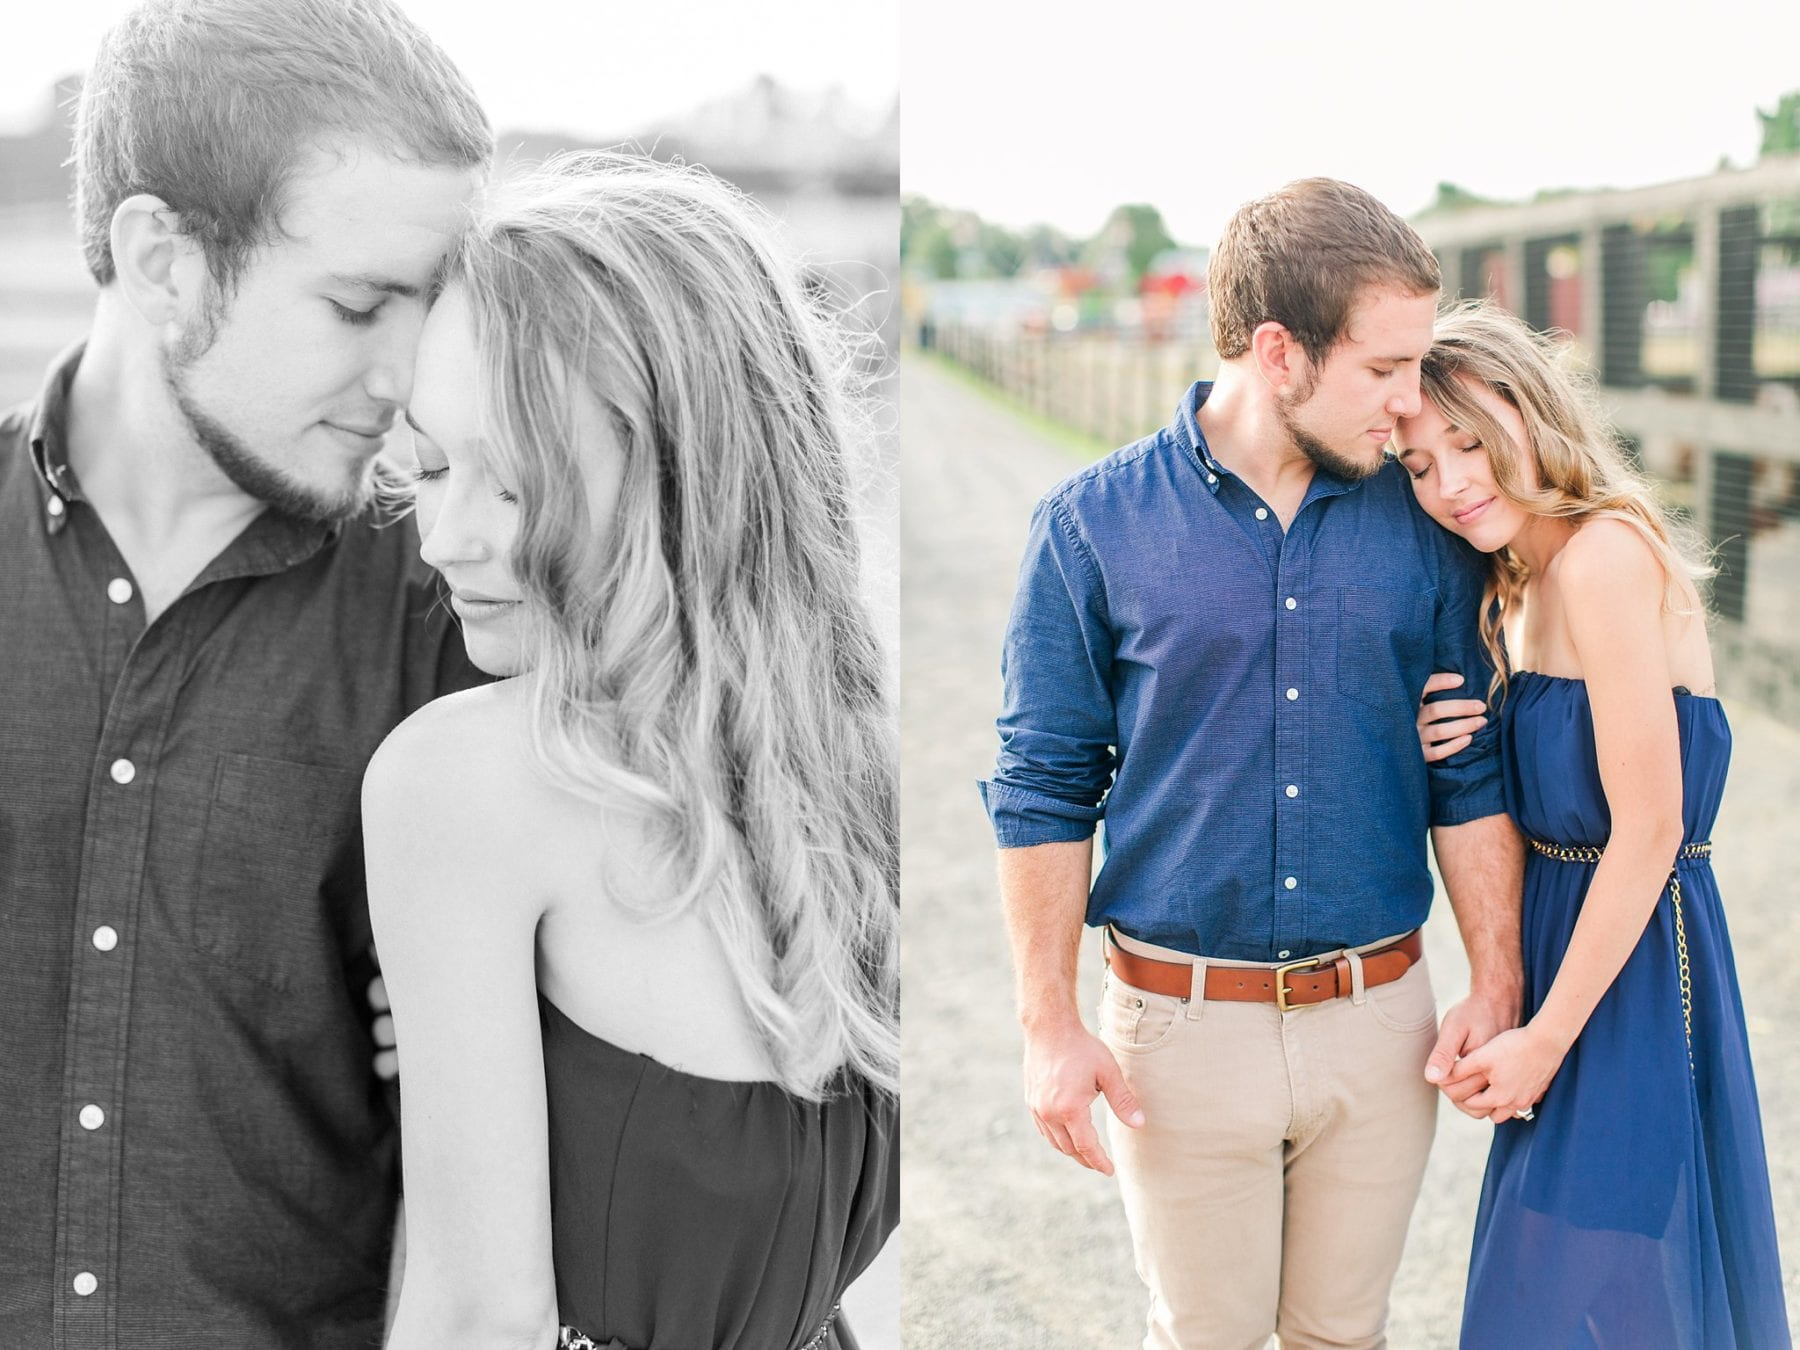 County Fair Engagement Photos Virginia Wedding Photographer Megan Kelsey Photography Samantha & Charles-294.JPG